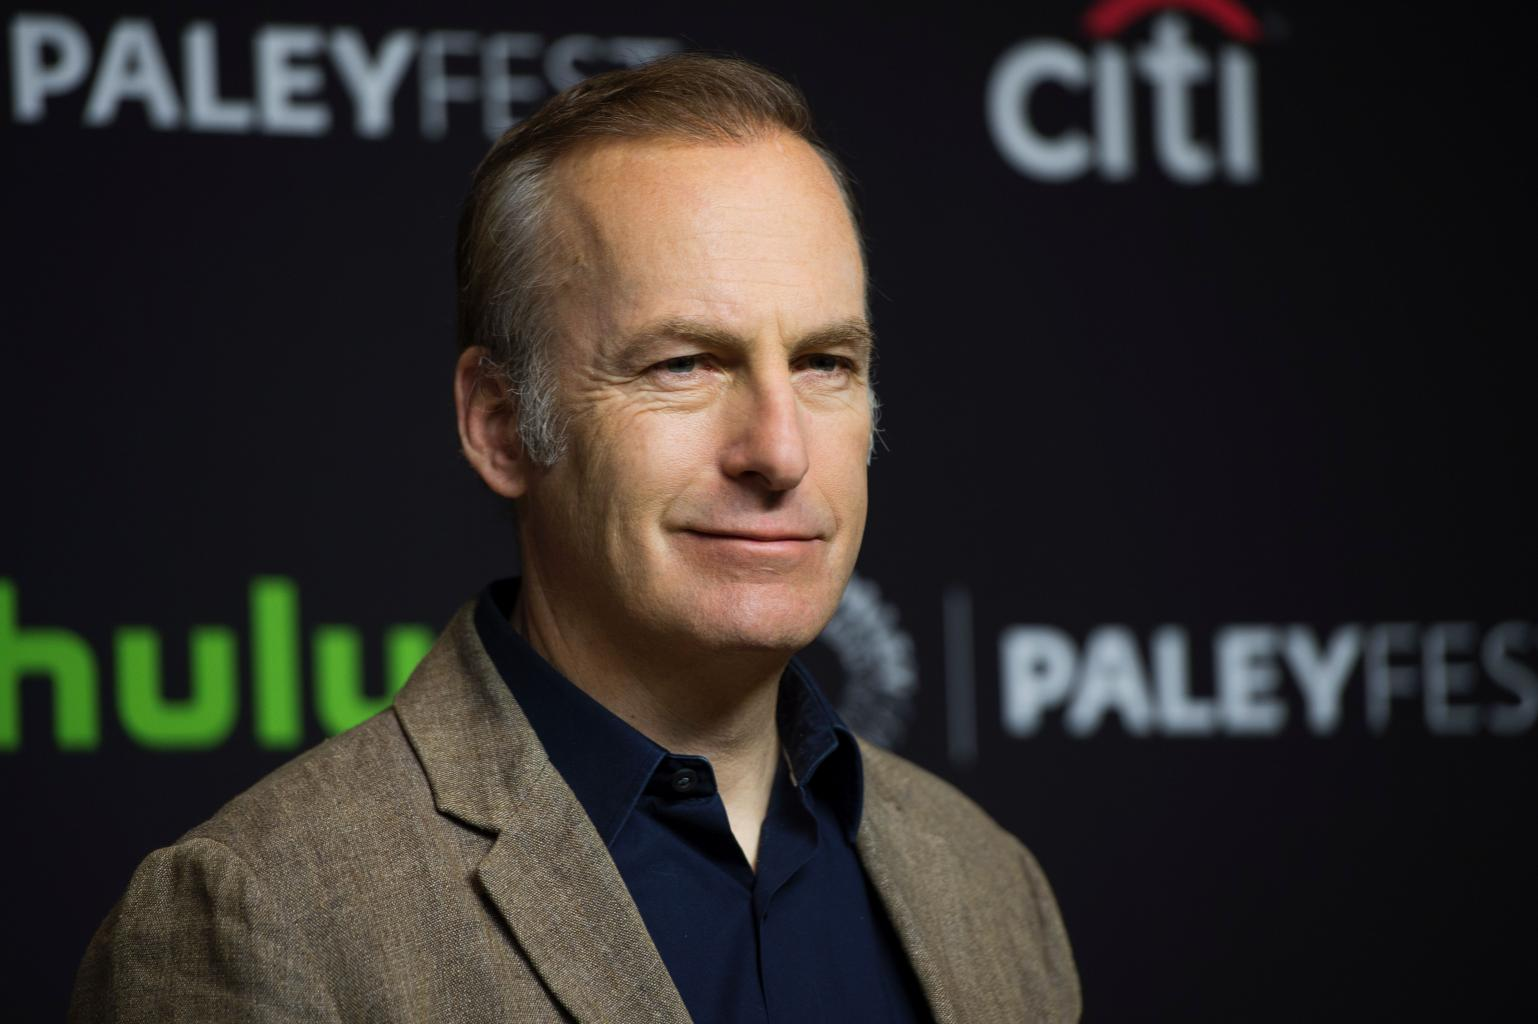 Better Call Saul  Star Bob Odenkirk Lands Book Deal, Will Write Book Of Essays About His Life In Comedy